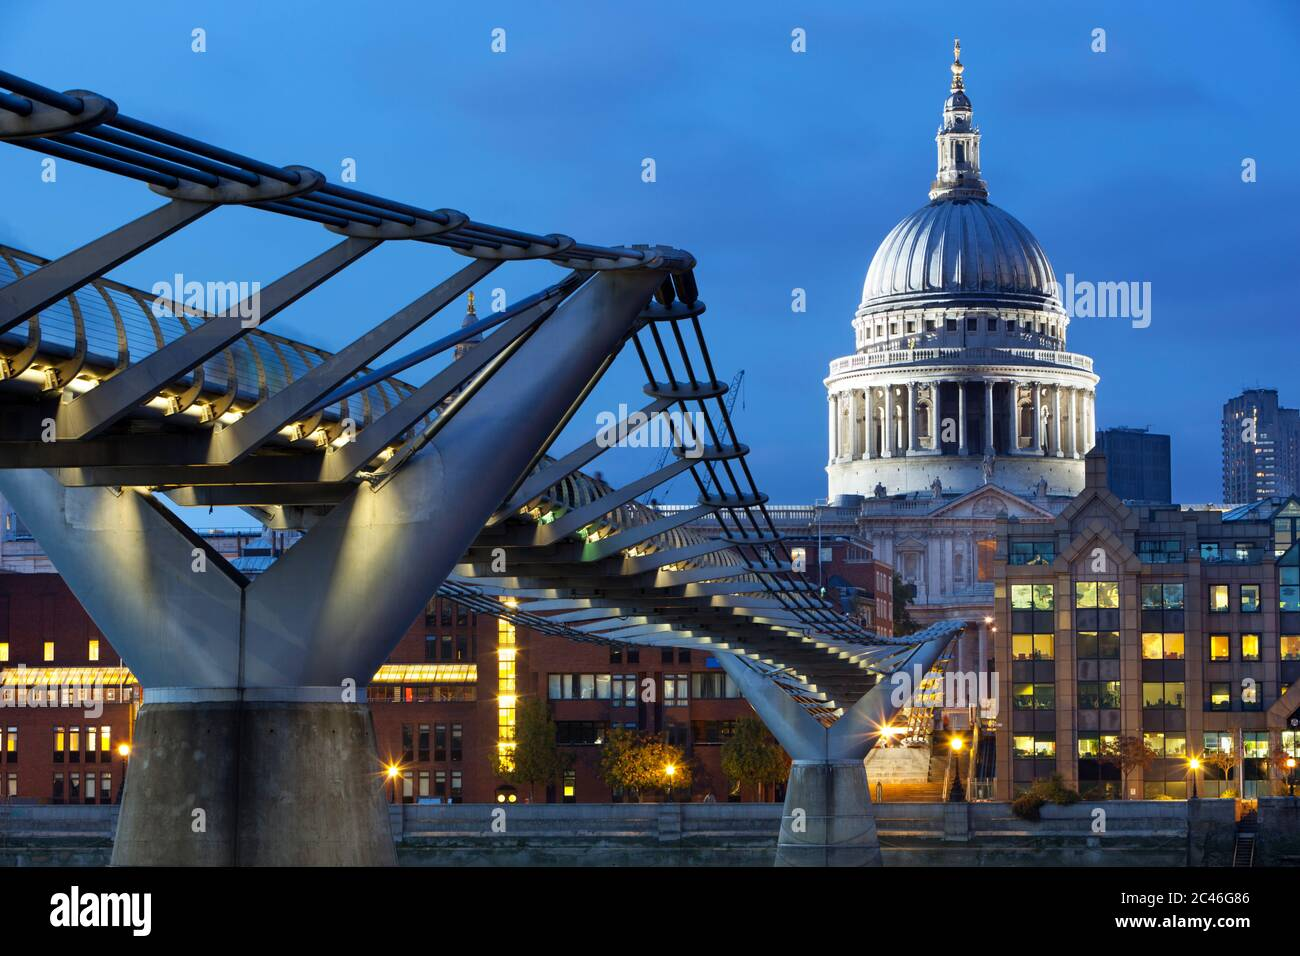 Millennium Bridge over River Thames and St Paul's Cathedral at dusk, London, England, United Kingdom, Europe Stock Photo